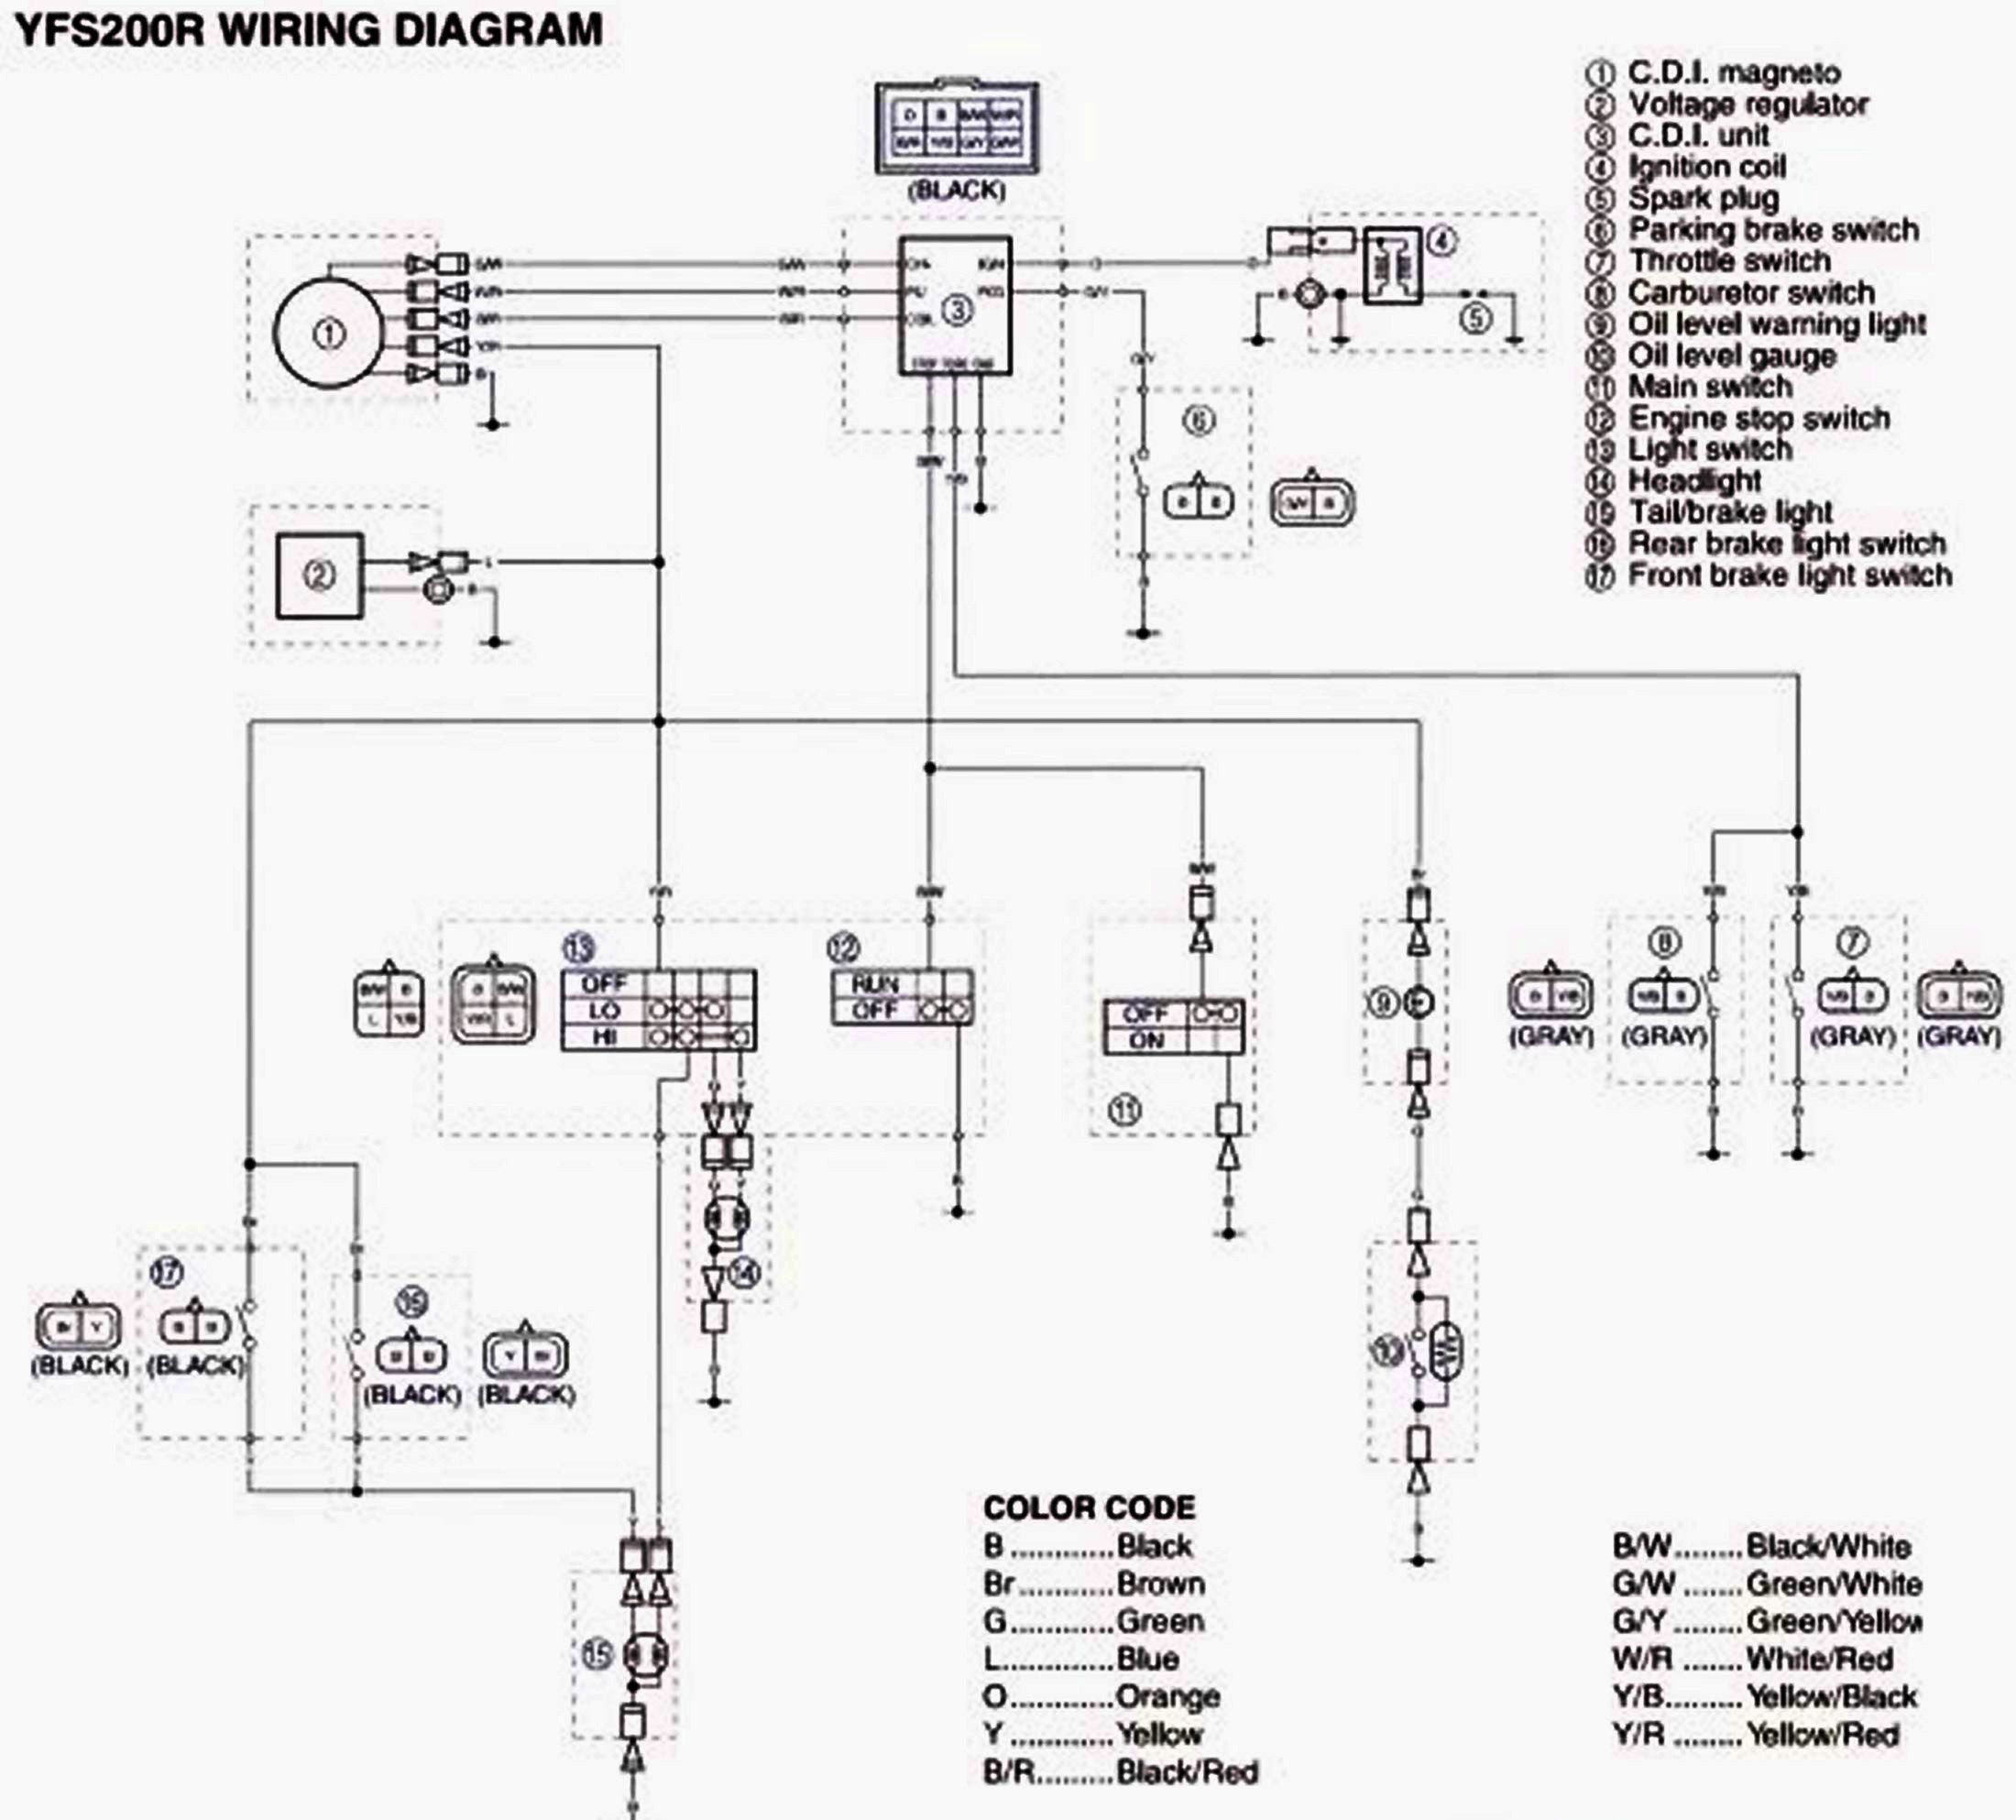 Cdi Wiring Diagram Pdf Great Installation Of Six Wire Schematic Yamaha Blaster Data Schema Rh 12 Diehoehle Derloewen De 6